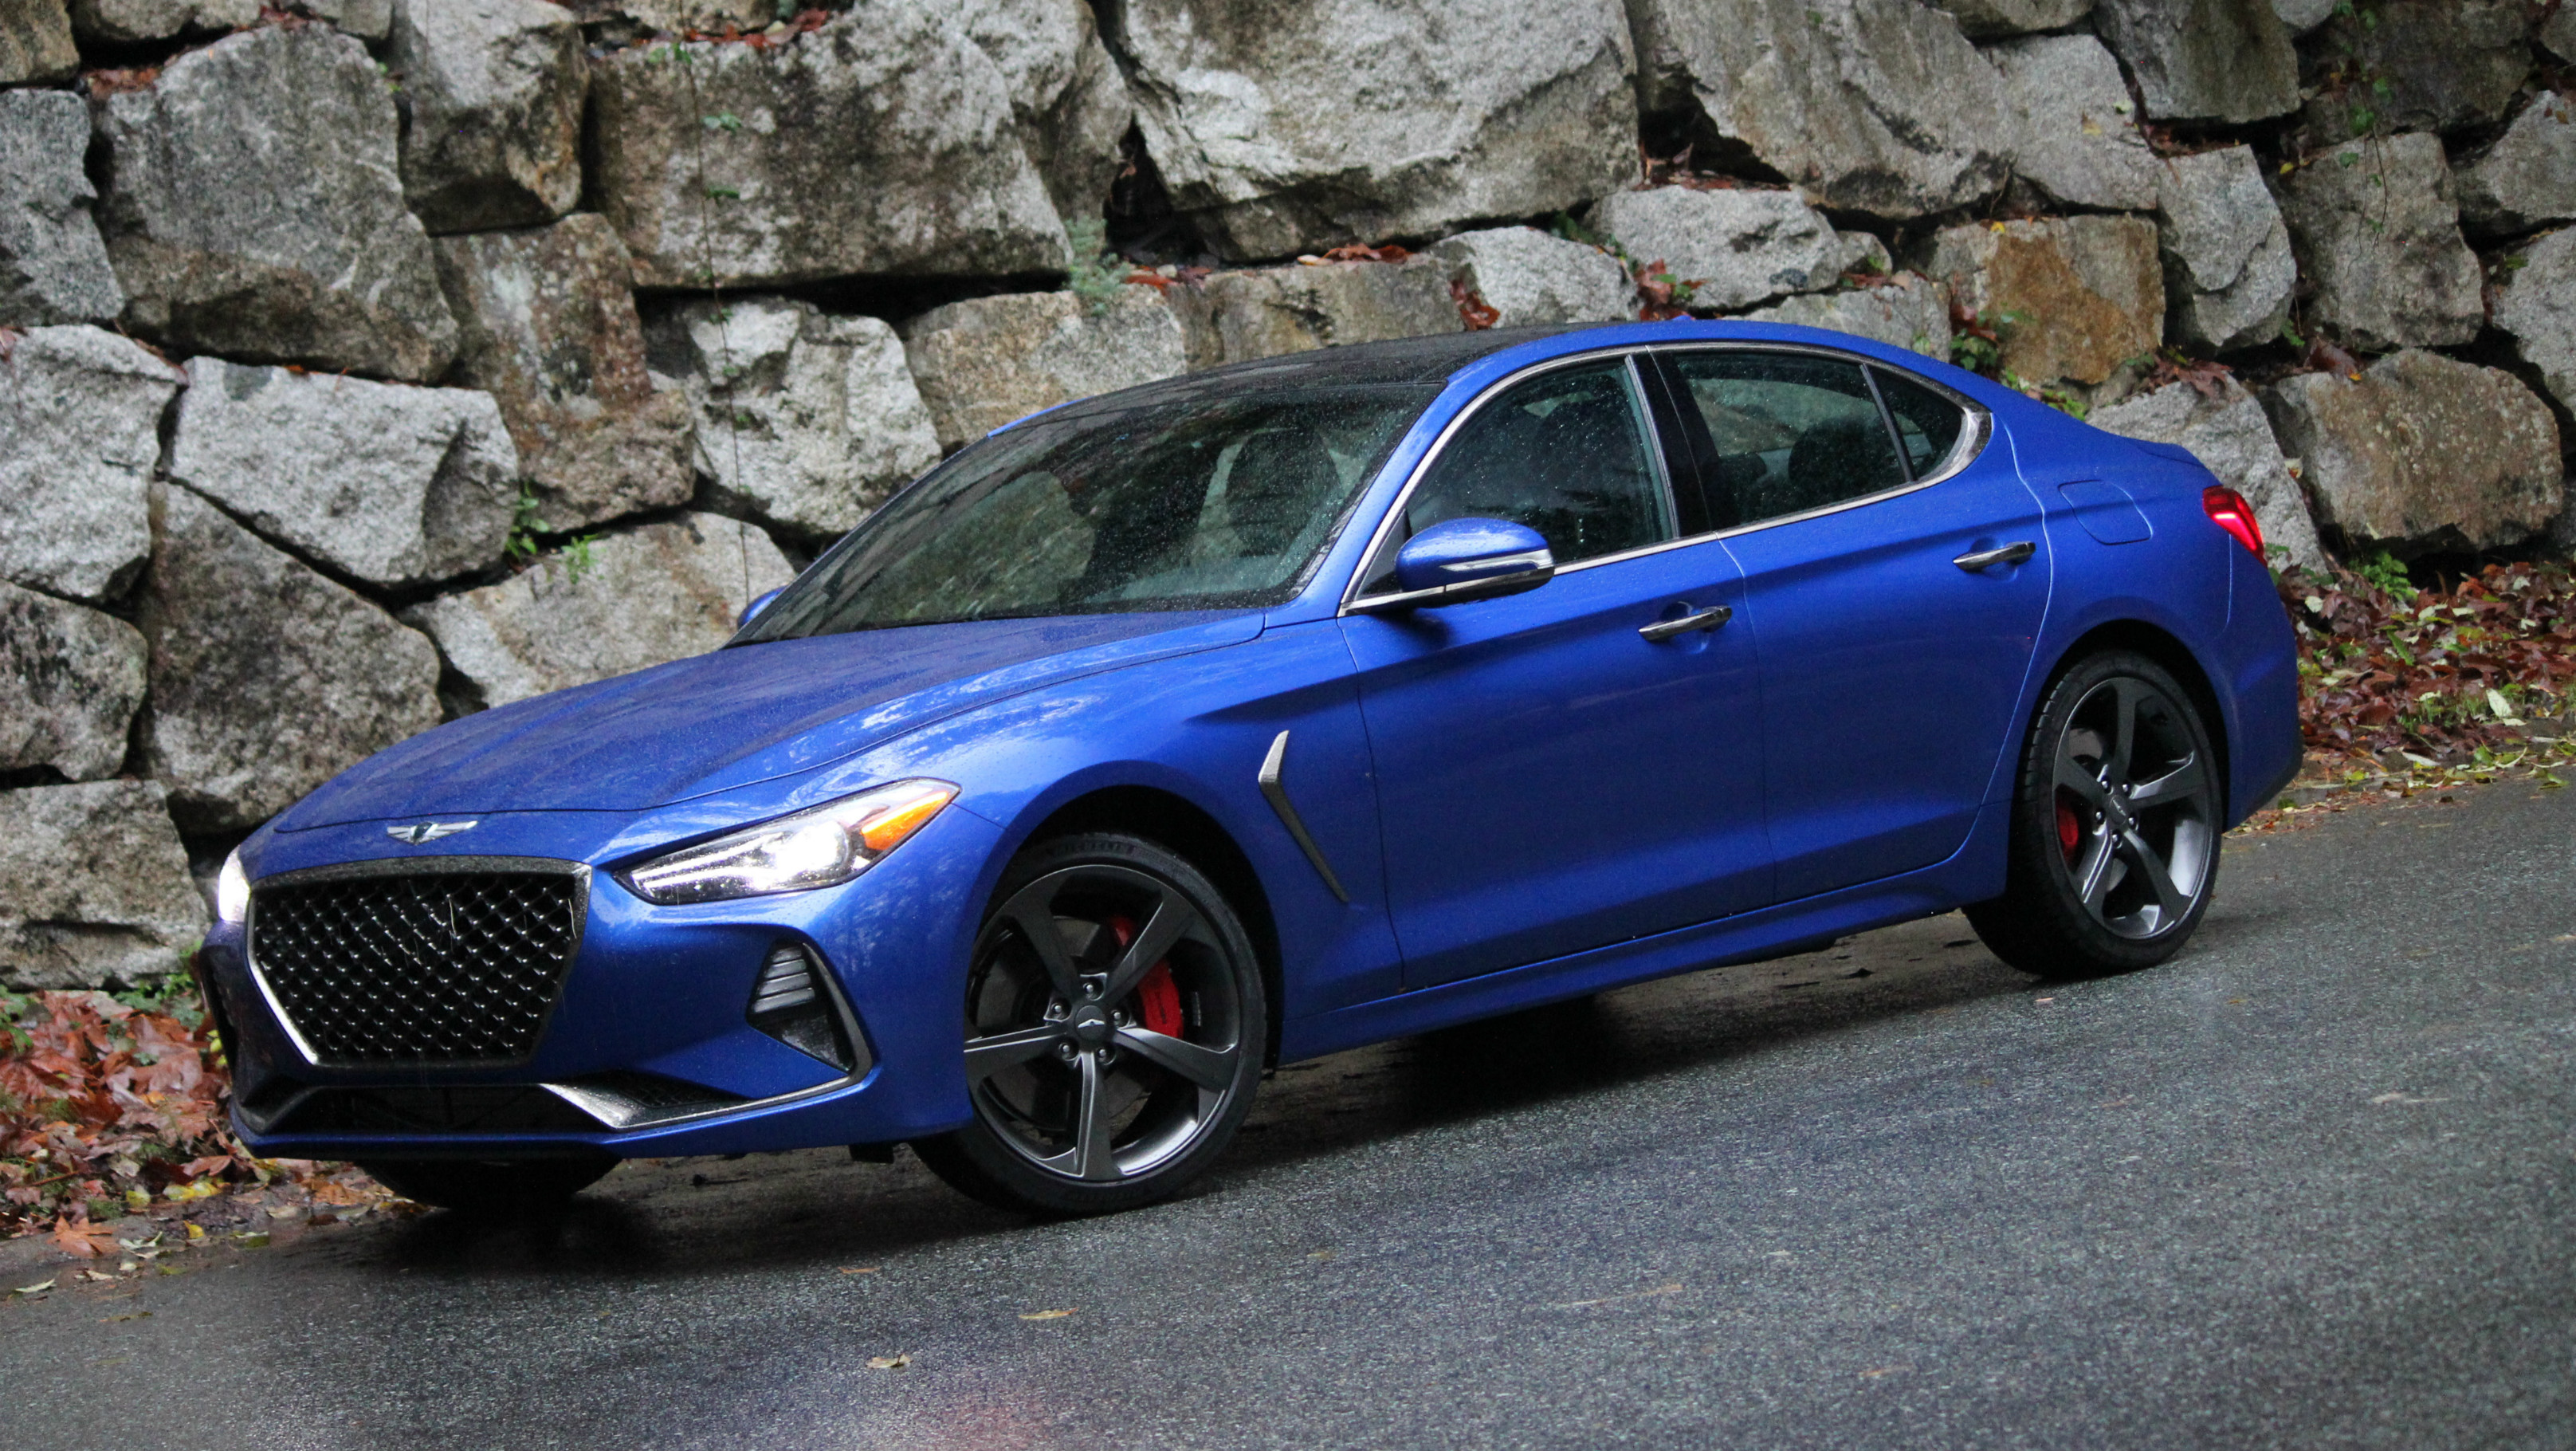 Review 2018 Genesis G70 3.3T Sport AWD